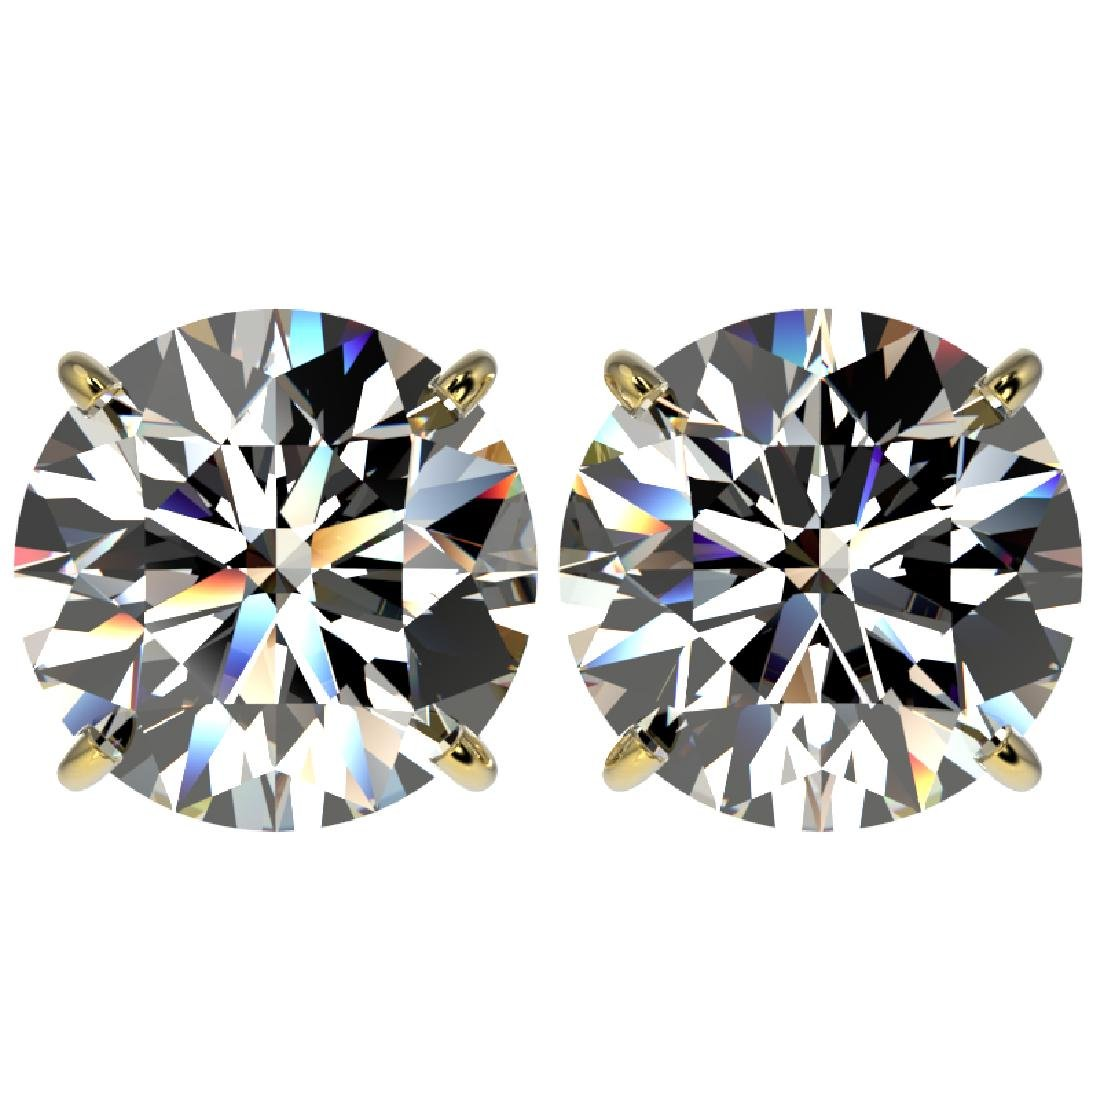 5 CTW Certified G-SI Diamond Solitaire Stud Earrings